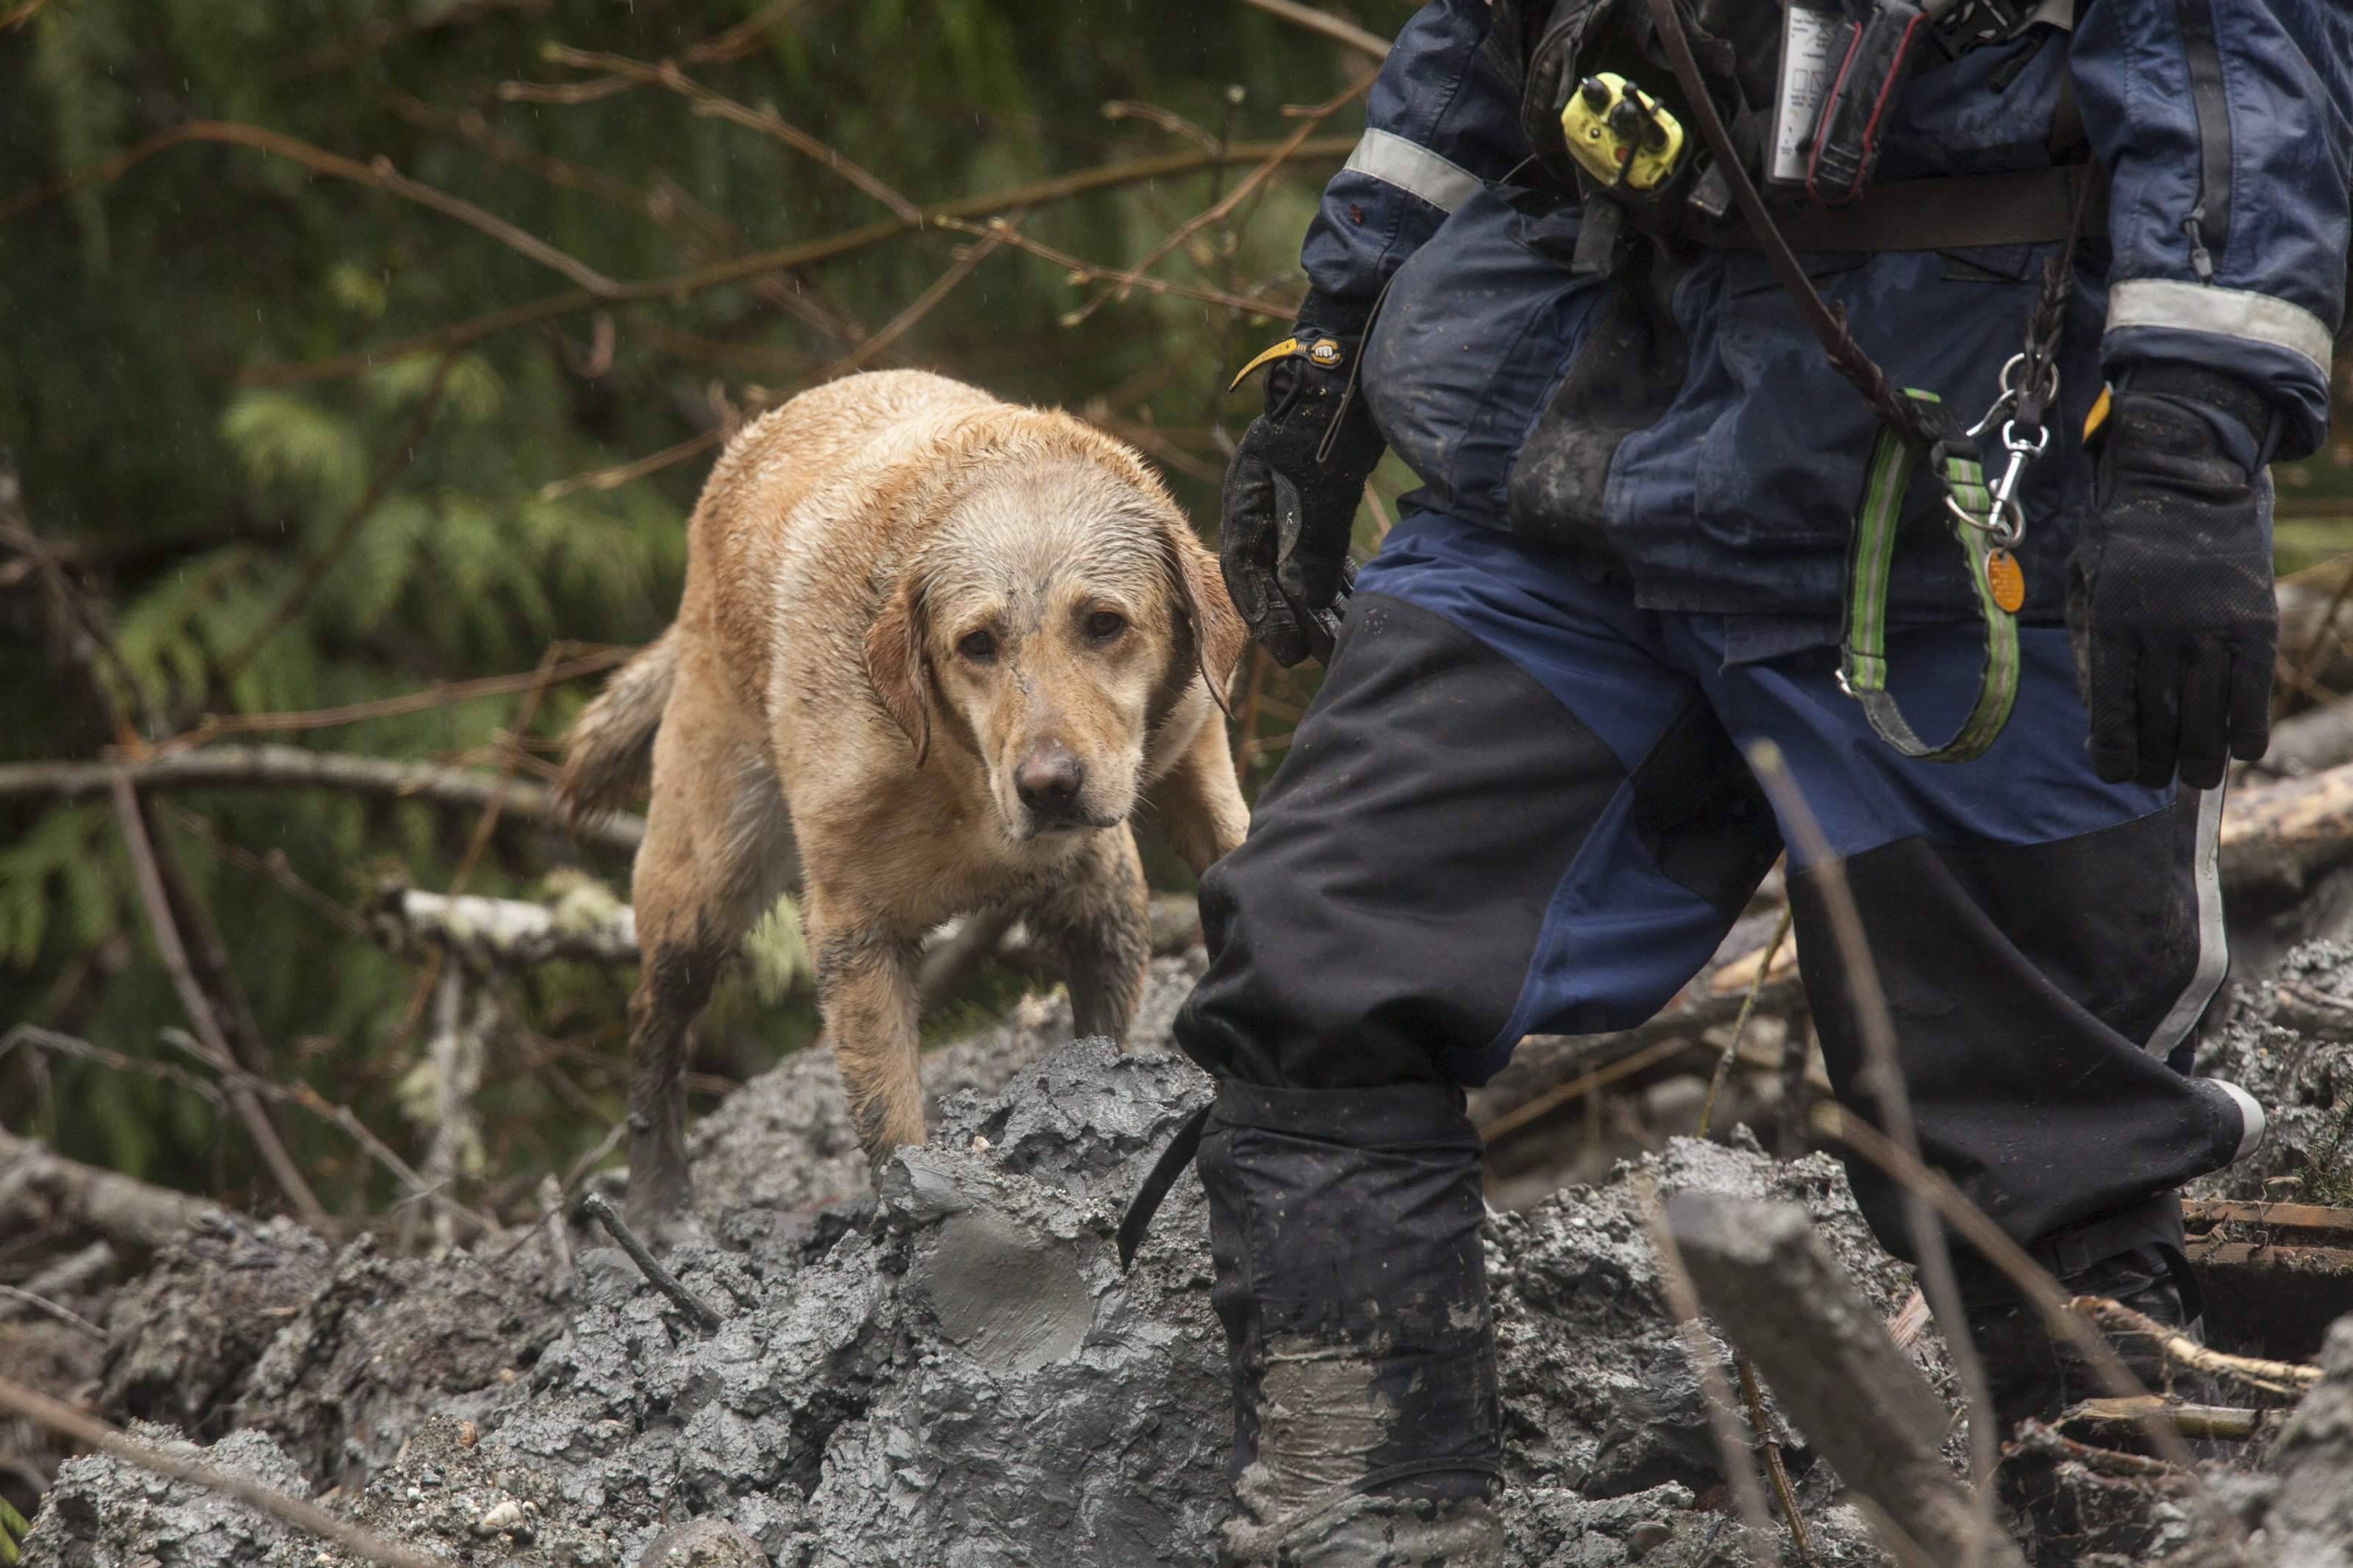 A search and rescue dog works the area of a massive mudslide on March 29, 2014 in Oso, Wash.